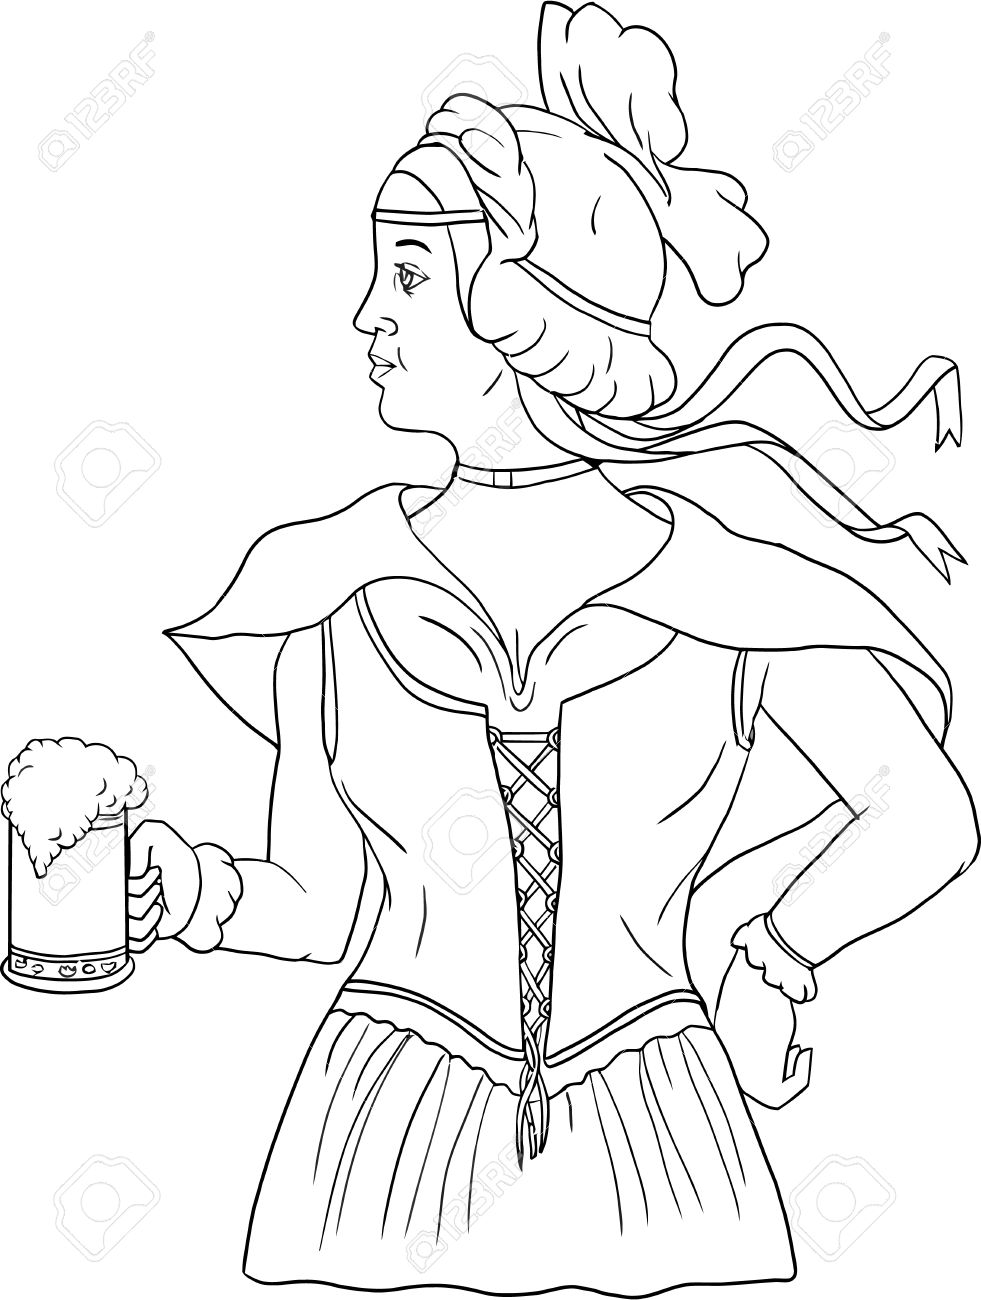 White dress drawing - Drawing Sketch Style Illustration Of A German Barmaid Wearing Medieval Renaissance Costume Dress Holding A Beer